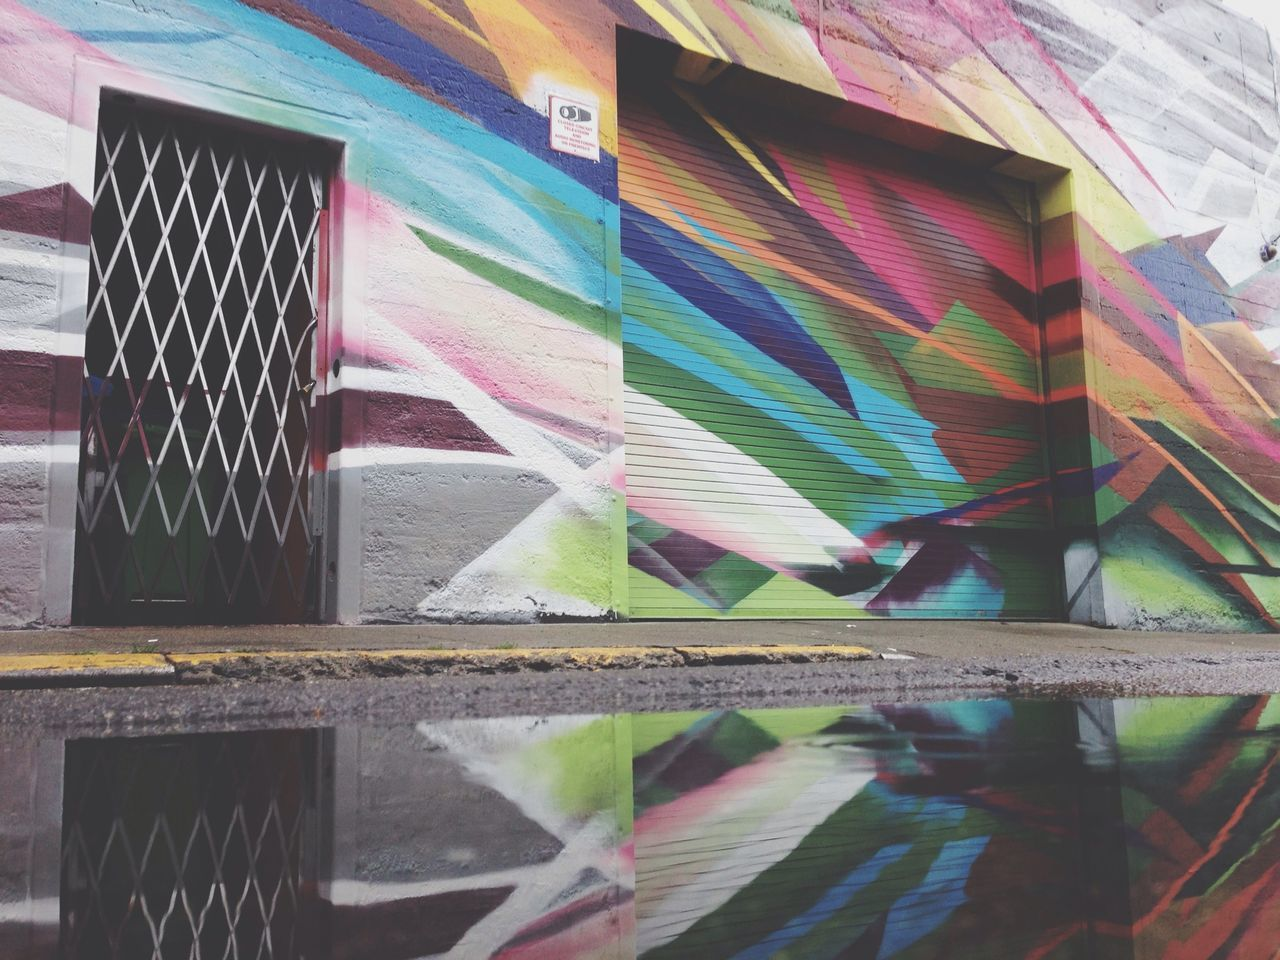 View of colorful wall with reflection in water